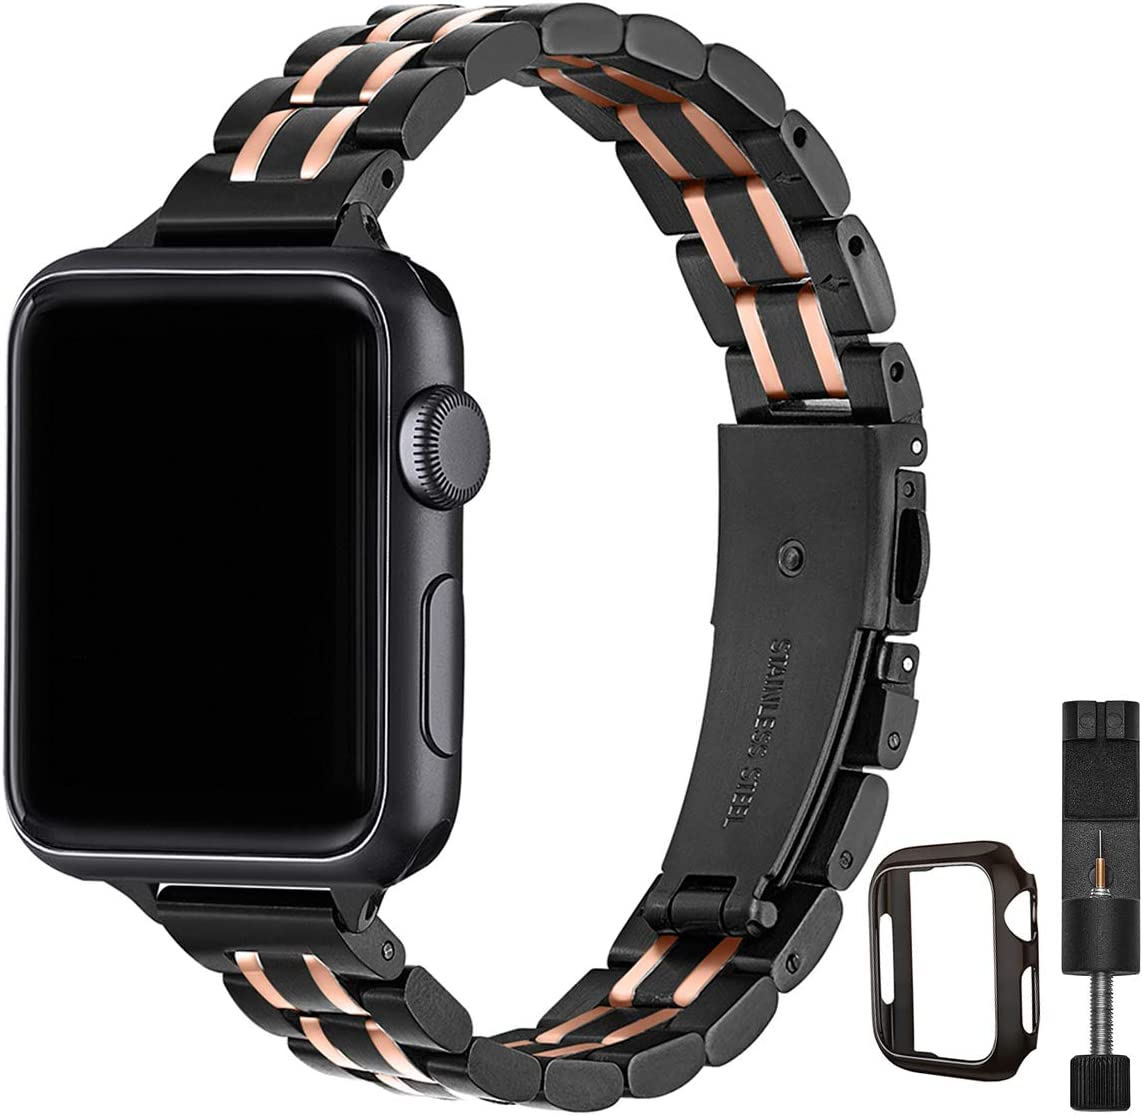 STIROLL Thin Replacement Band Compatible for Apple Watch 38mm 40mm 42mm 44mm, Stainless Steel Metal Wristband Women Men for iWatch SE Series 6/5/4/3/2/1 (Black+Rose Gold, 38mm/40mm)